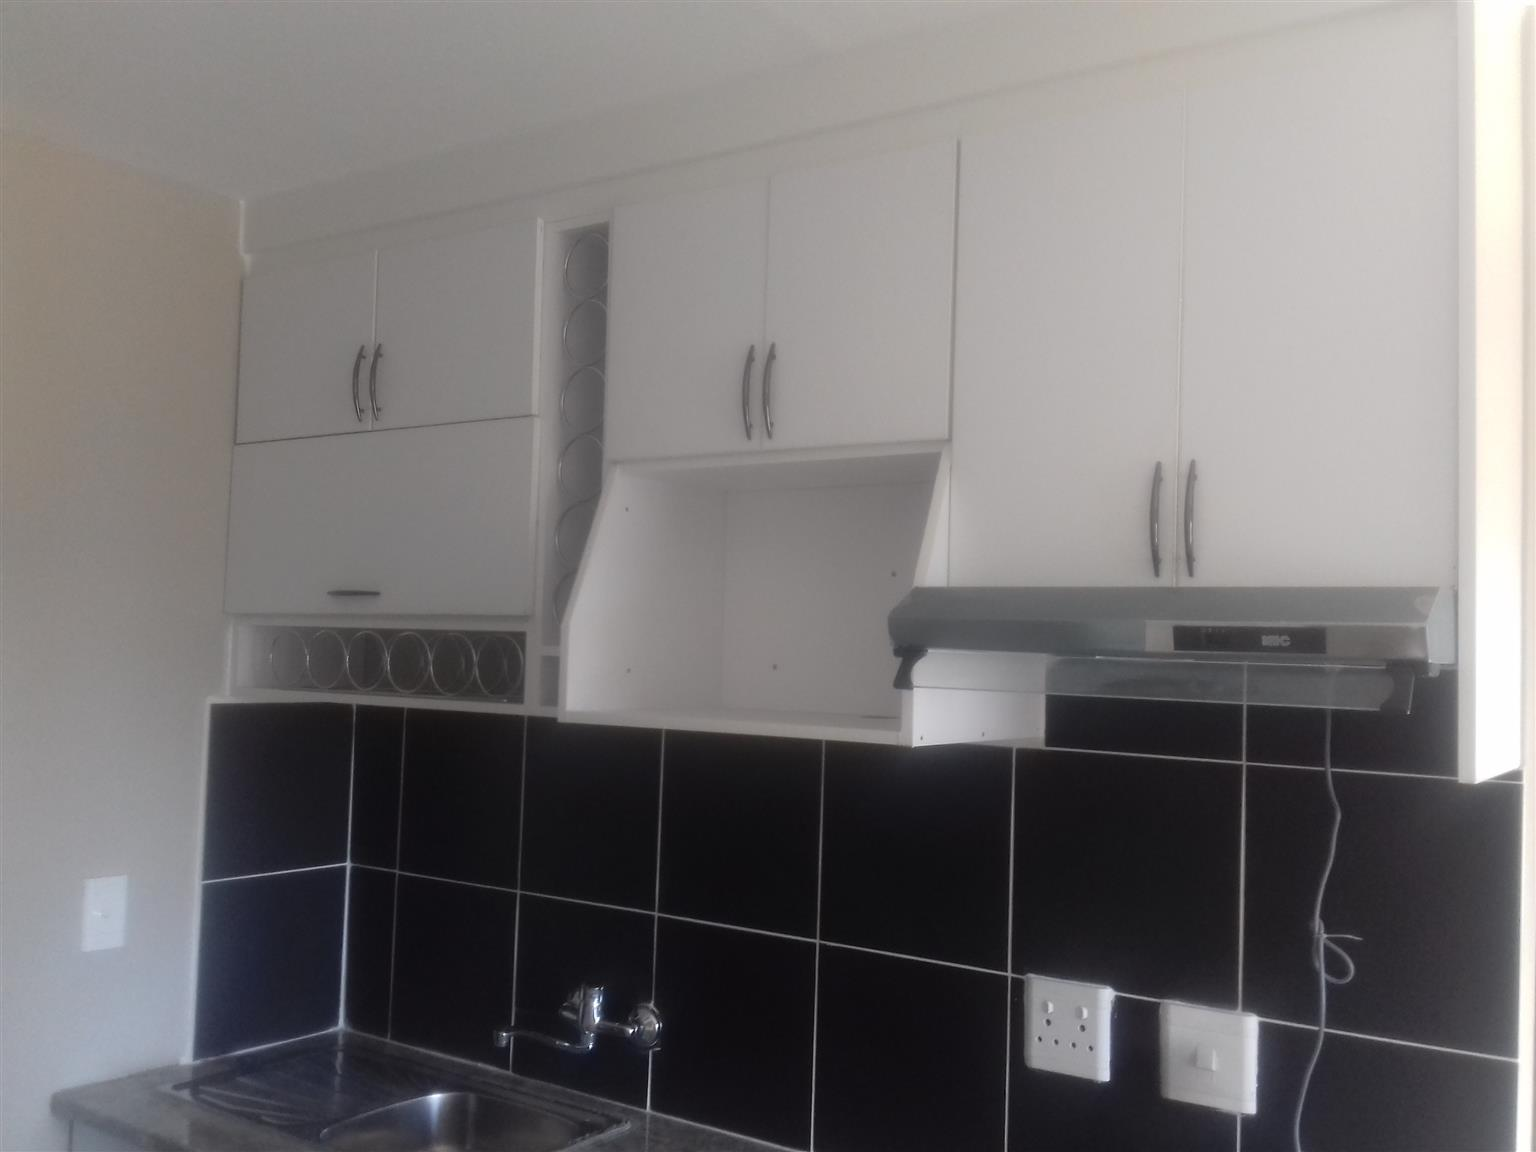 This is a perfect time to buy this cozy 2 bedrooms apartment for investment purposes